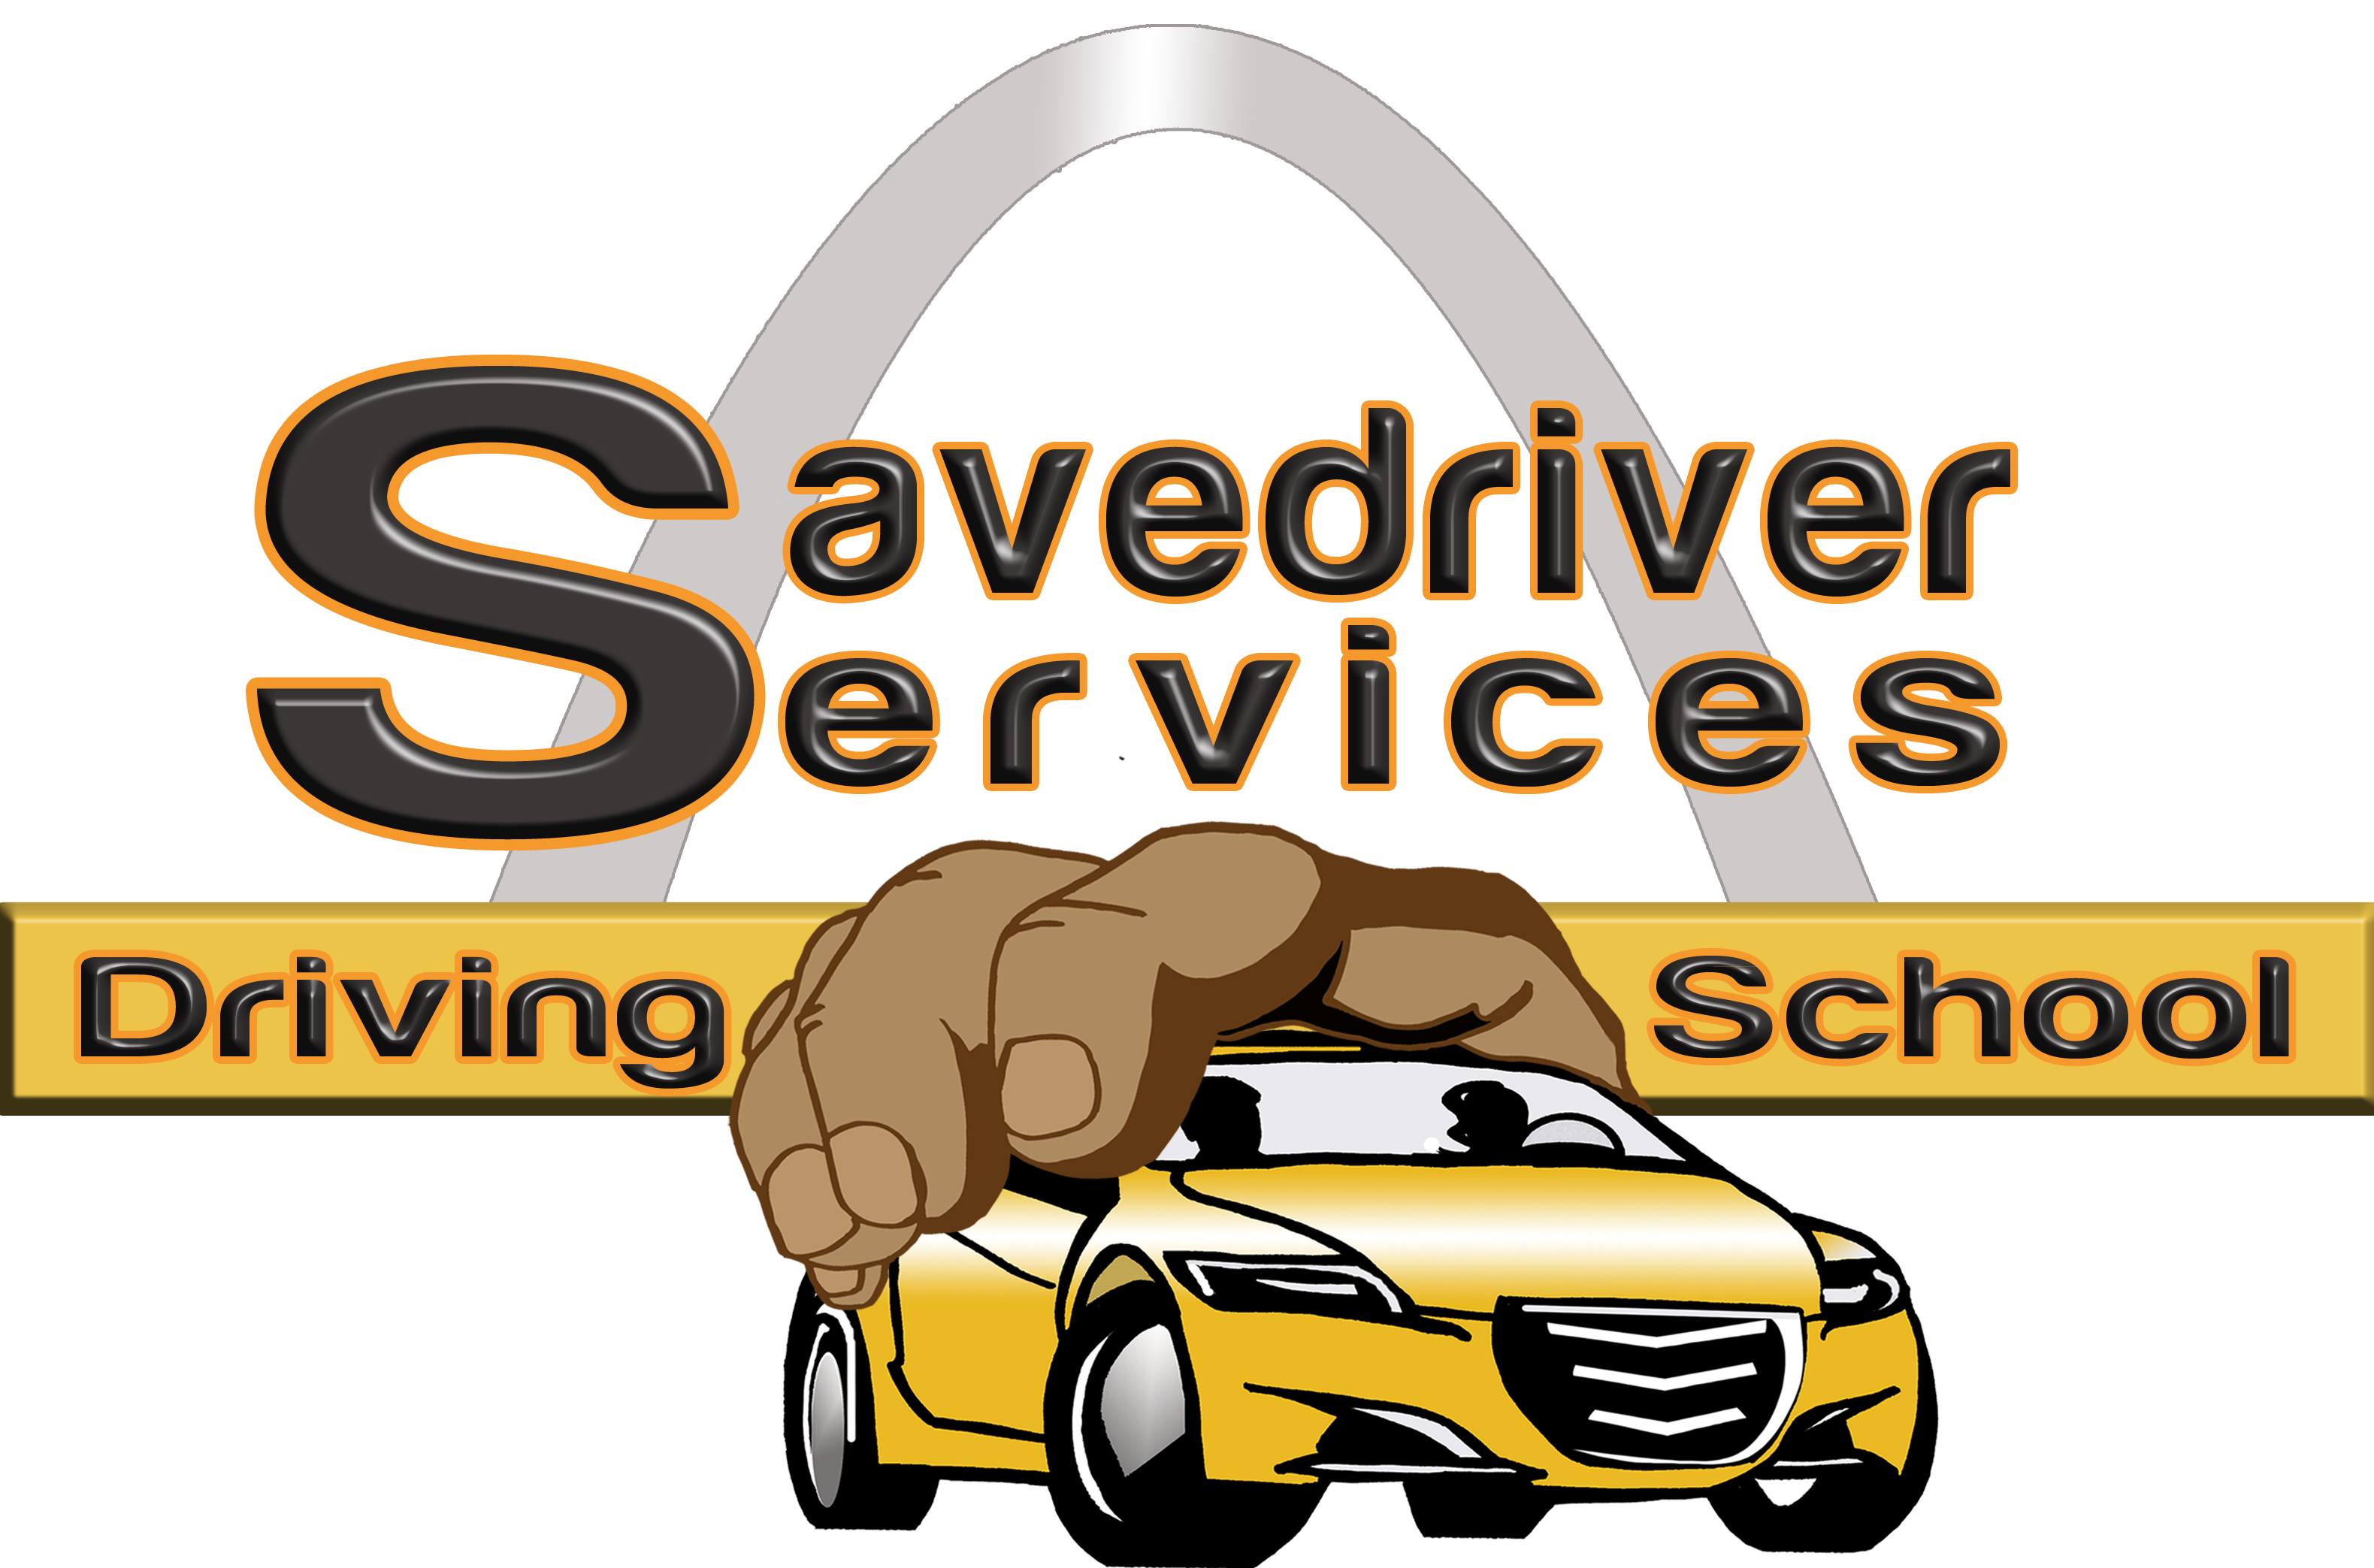 Savedrivers Services Driving School of St. Louis